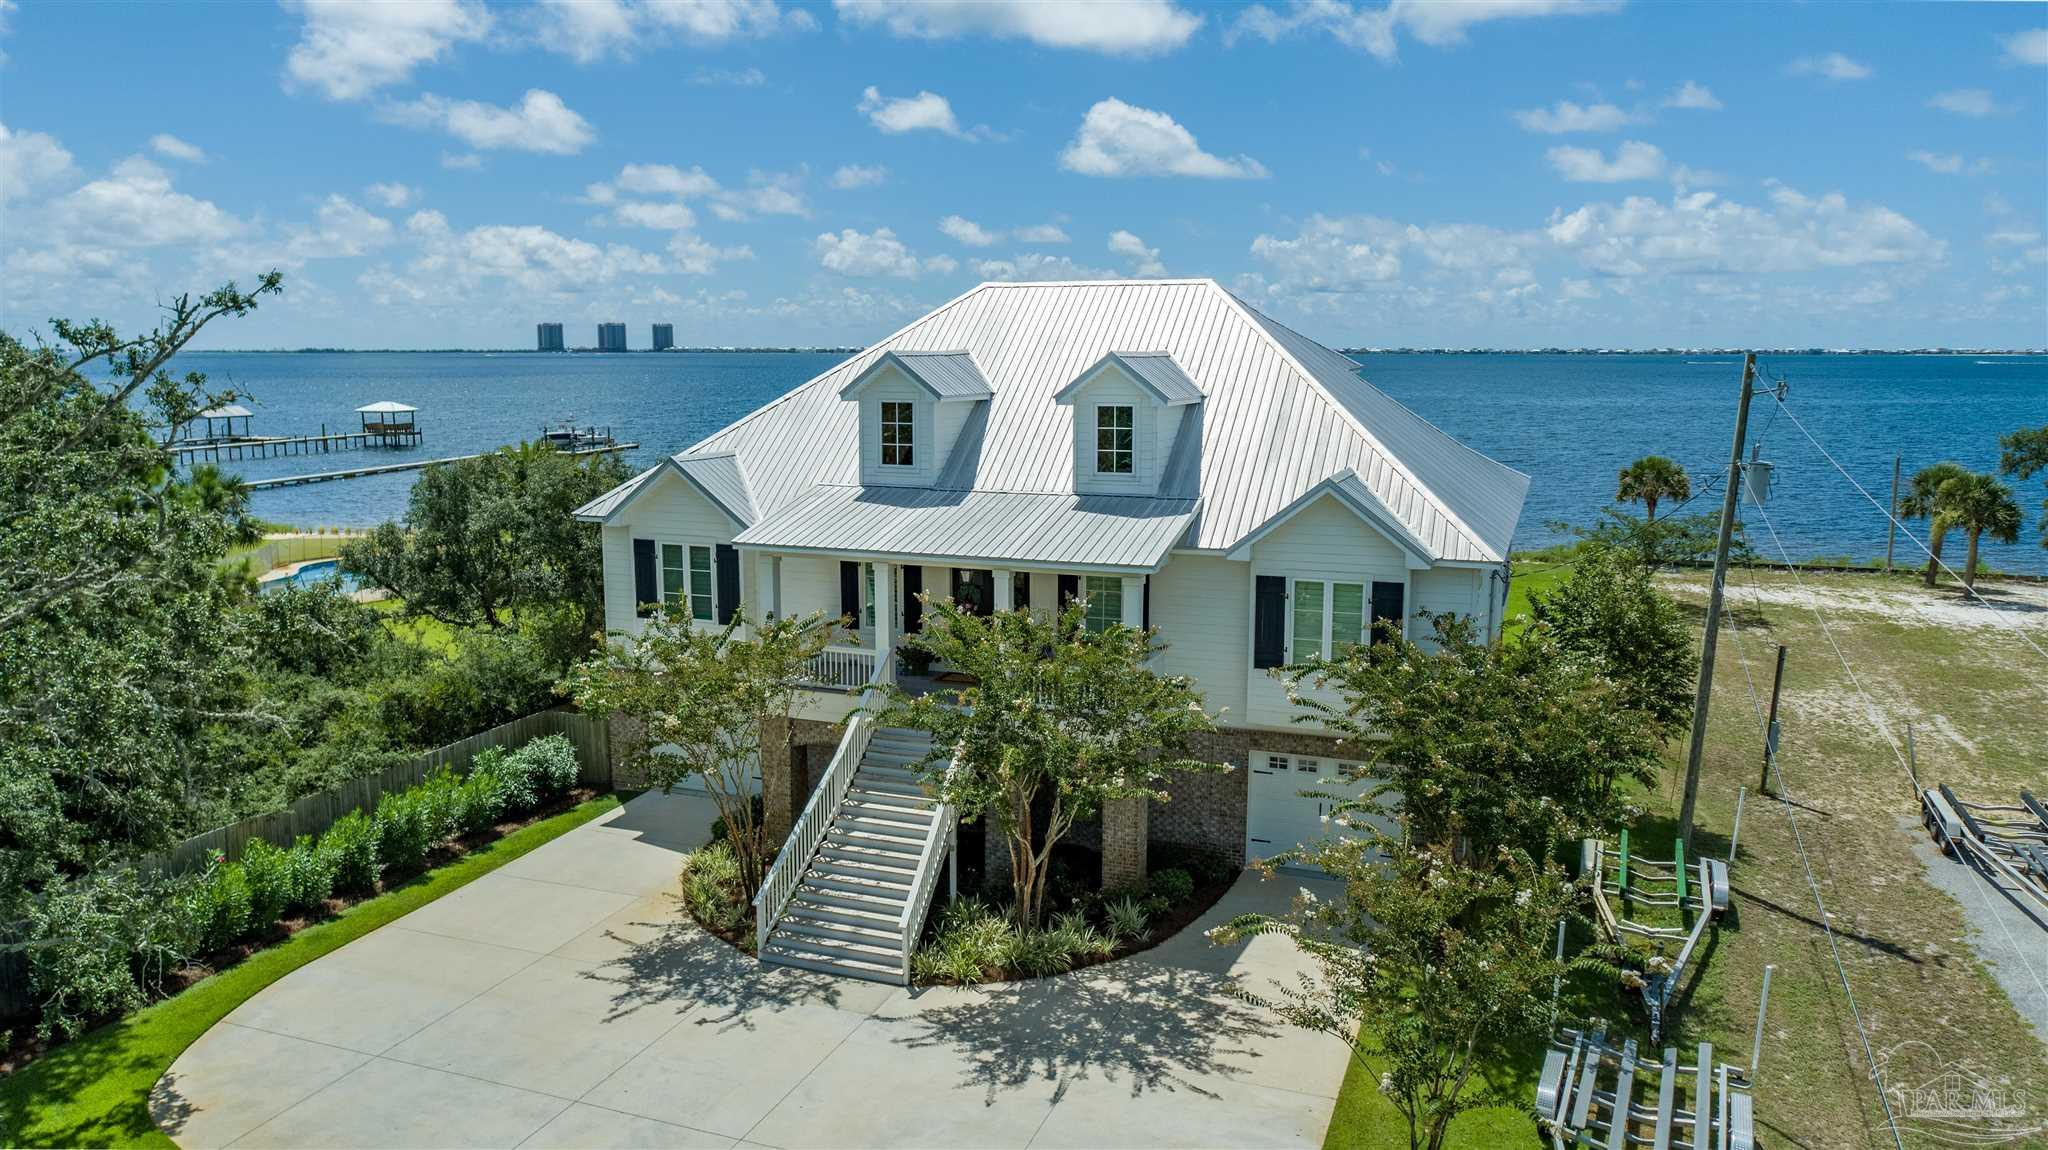 """Soundfront living at its finest, come enjoy everything the coastal lifestyle has to offer! This precision craftsmanship custom home is situated among beautiful trees on a large lot with access to your own soundfront private beach. This stunning home embraces serene living and offers many upgrades~outside has a large covered porch~private beach~long """"Thru-Flow"""" dock~electric boat lifts allows for convenient access to the Sound, intercoastal and Pensacola Beach located directly across~back and front yard irrigation system with well. Inside home has plantation shutters~elevator shaft for future elevator if needed~alarm system~Ring Doorbell~laundry with desk area~french doors with balcony access from living room, master bedroom and guest bedroom~all bedrooms with their own dedicated private full bath~master bath has double vanities, garden tub, separate shower, 2 closets 1 is a huge walk-in closet~half bath in hall for guest~beautiful open-concept floor-plan was thoughtfully considered to accommodate large gatherings for entertaining with family and friends~well designed kitchen with large island bar~quartz counter tops~walk-in pantry~double oven~gas cooktop~stainless steel appliances~spacious separate dining room to make entertaining easy and fun~beautiful wood like tile floors running through all the main living areas~high ceilings~built-in bookcases~gas fireplace in living room~upstairs offers a 4th bedroom~bonus room with bathroom~walk-in attic for easy storage access. There are multiple areas to enjoy gorgeous Soundfront views, fishing, paddle boarding, jet skiing, or just a relaxed pace of life. Don't miss out on all the charm that coastal living has to offer!"""